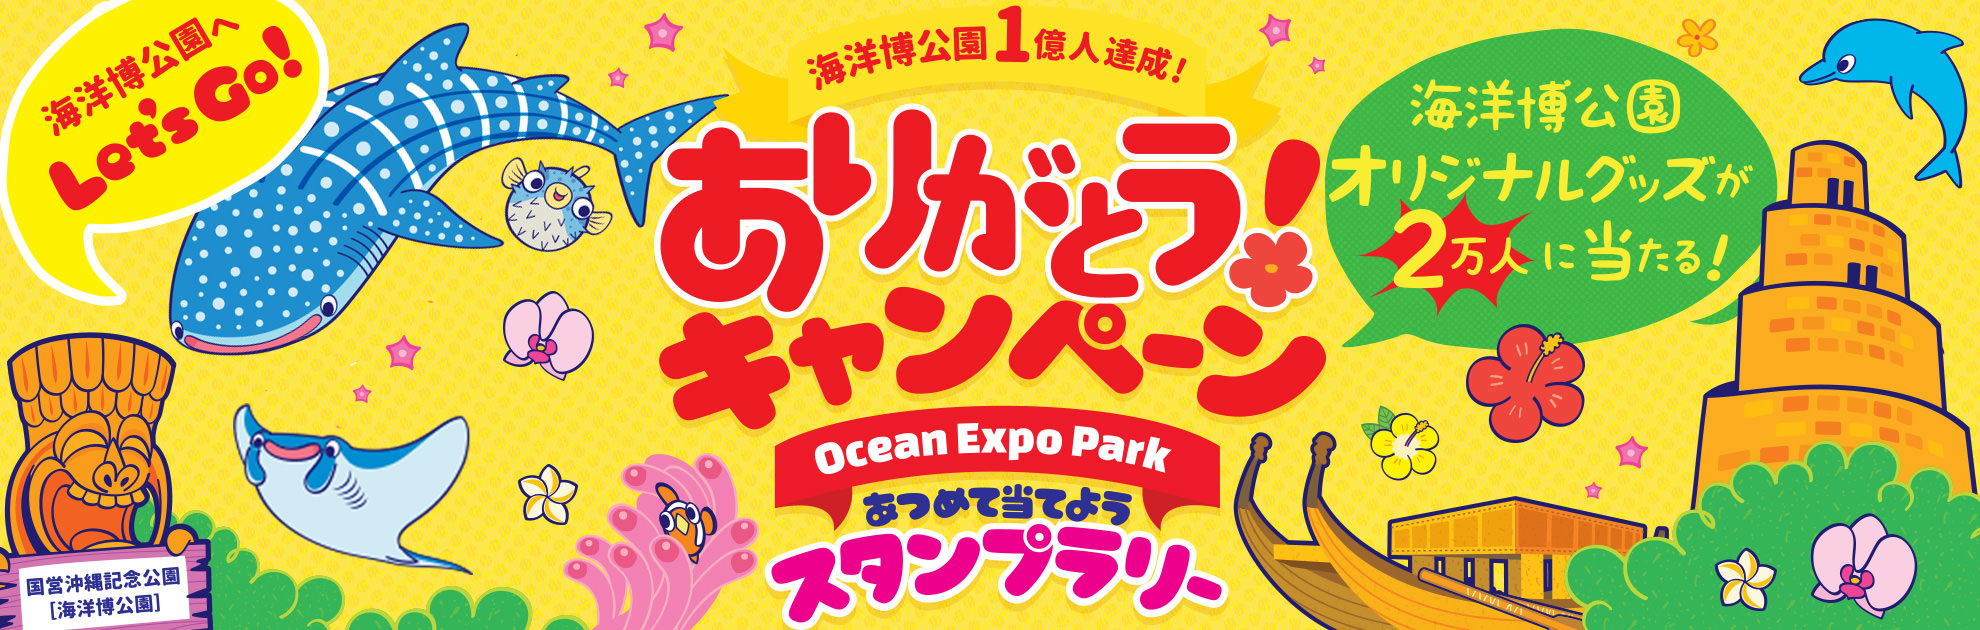 Achievement of 100 million people of Ocean Expo Park admission memory thank you! Campaign